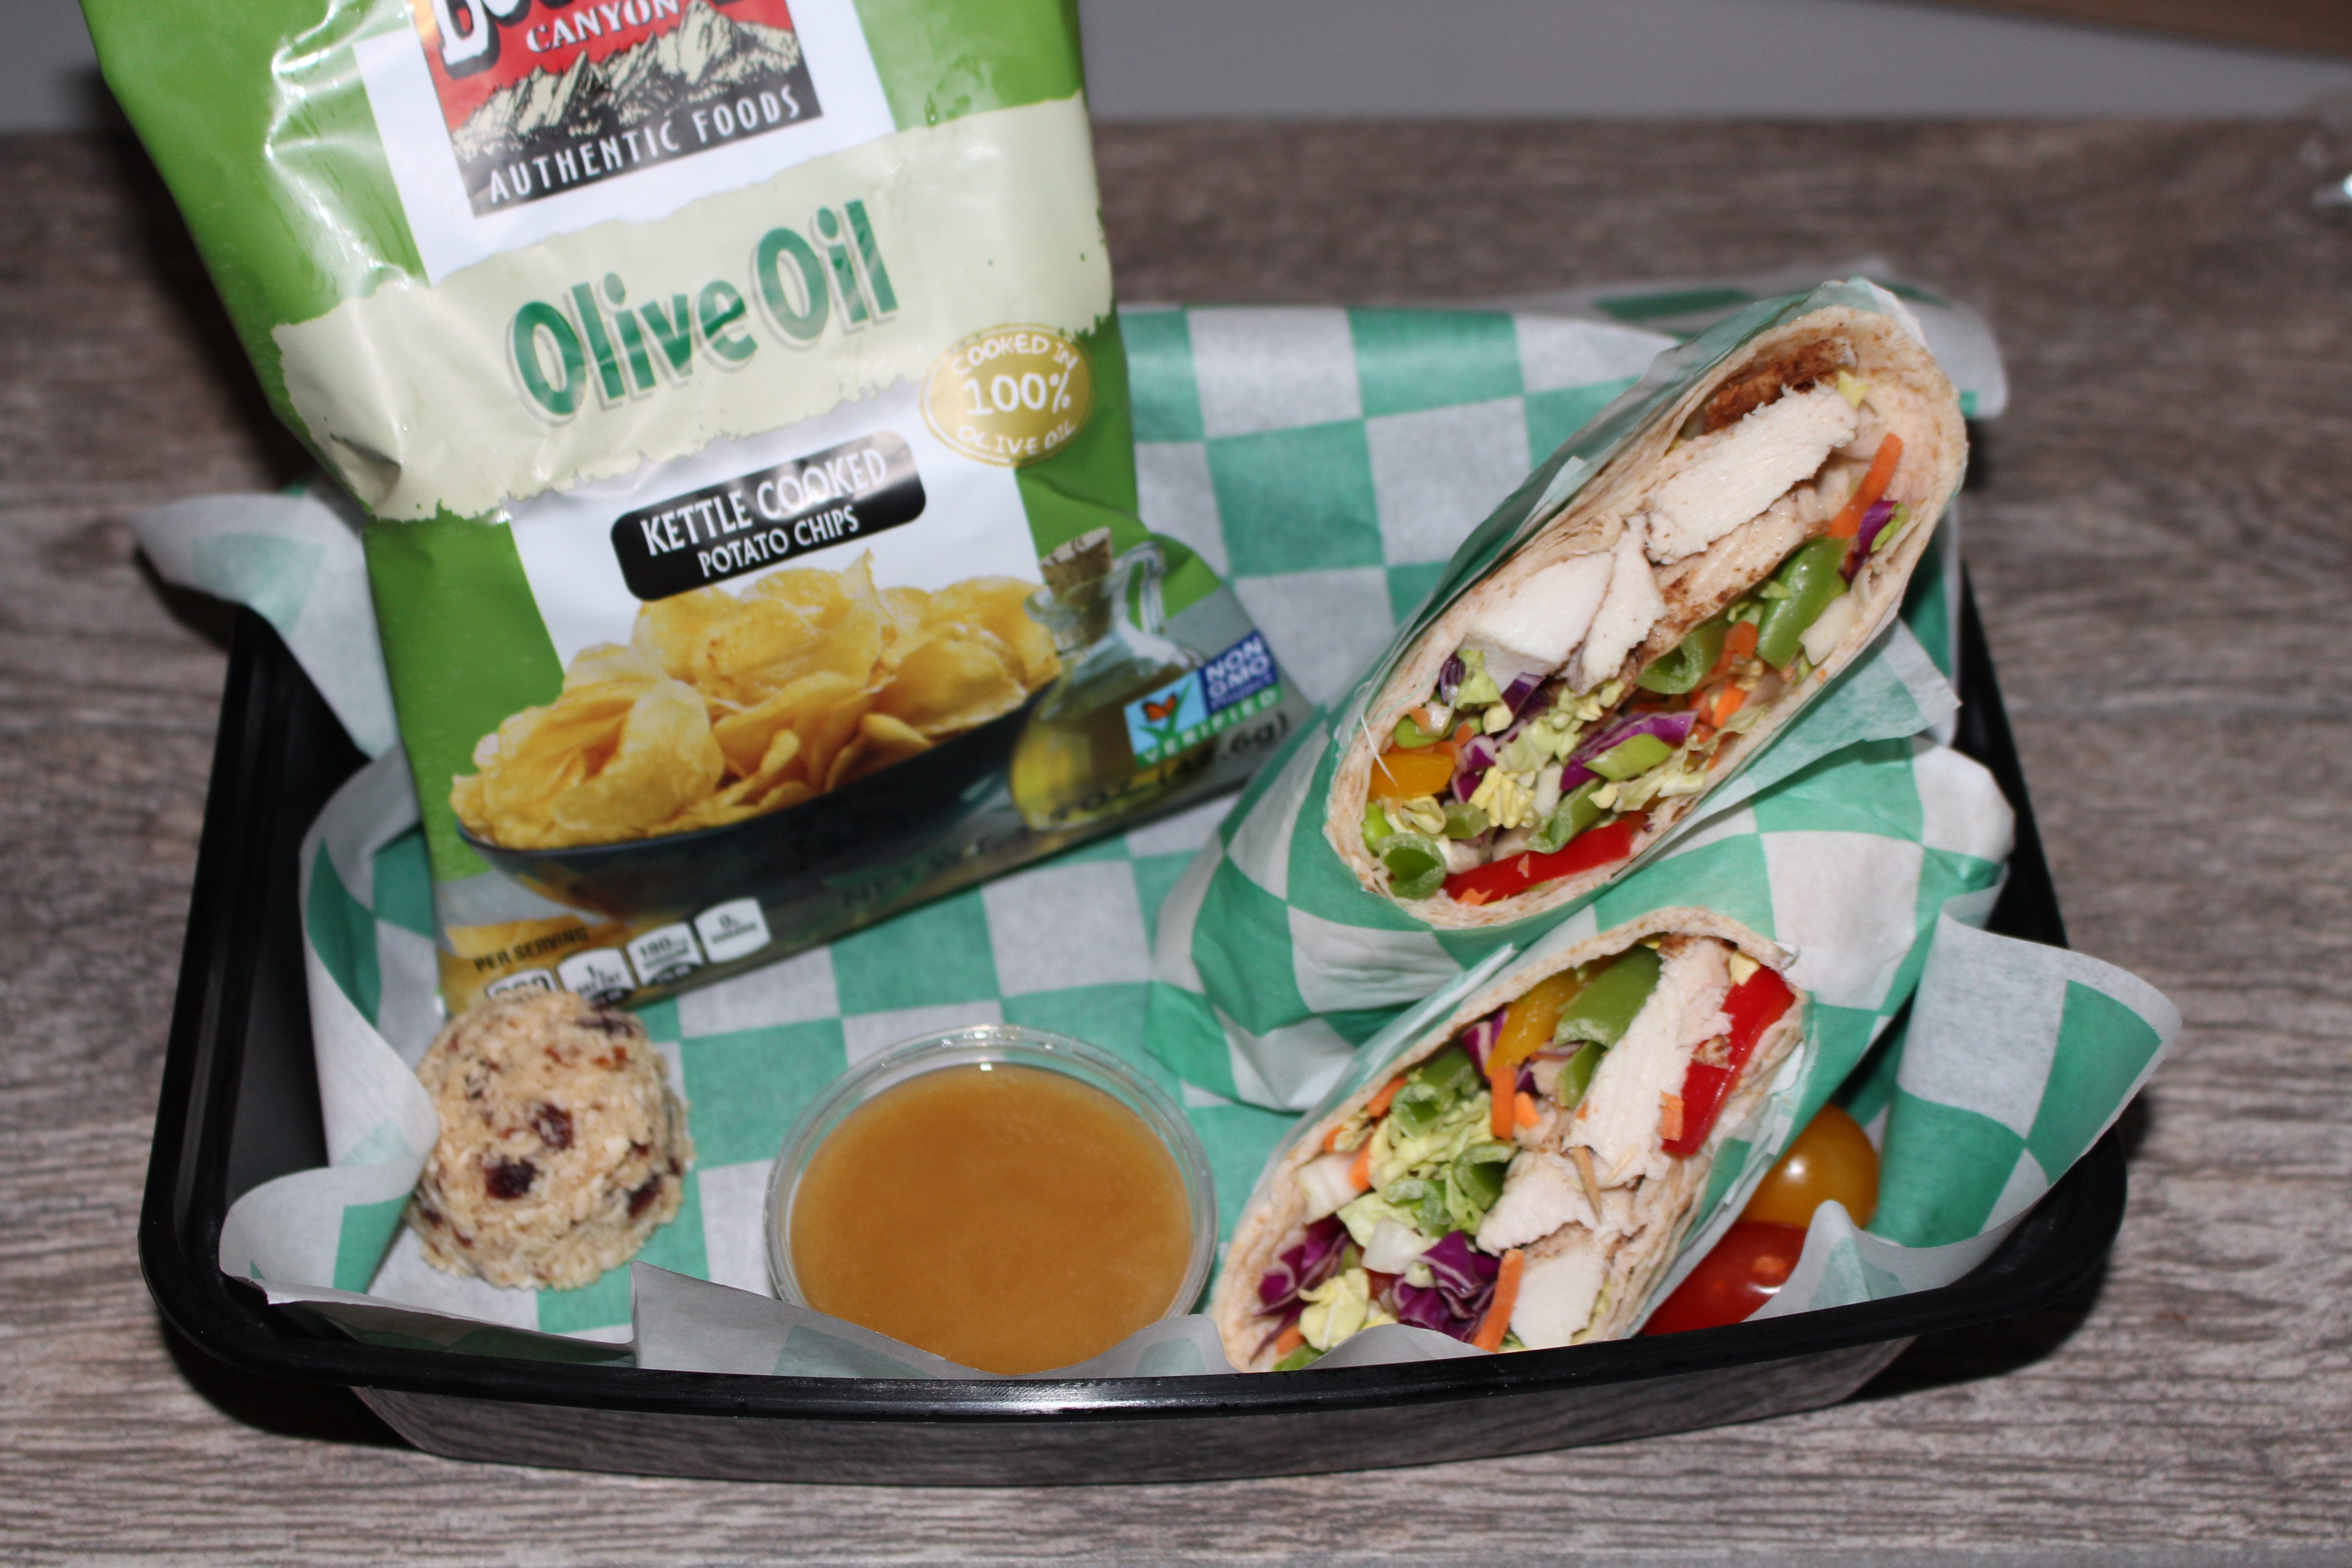 Asian salad wrap with chips cuisine for healing for Cuisine for healing